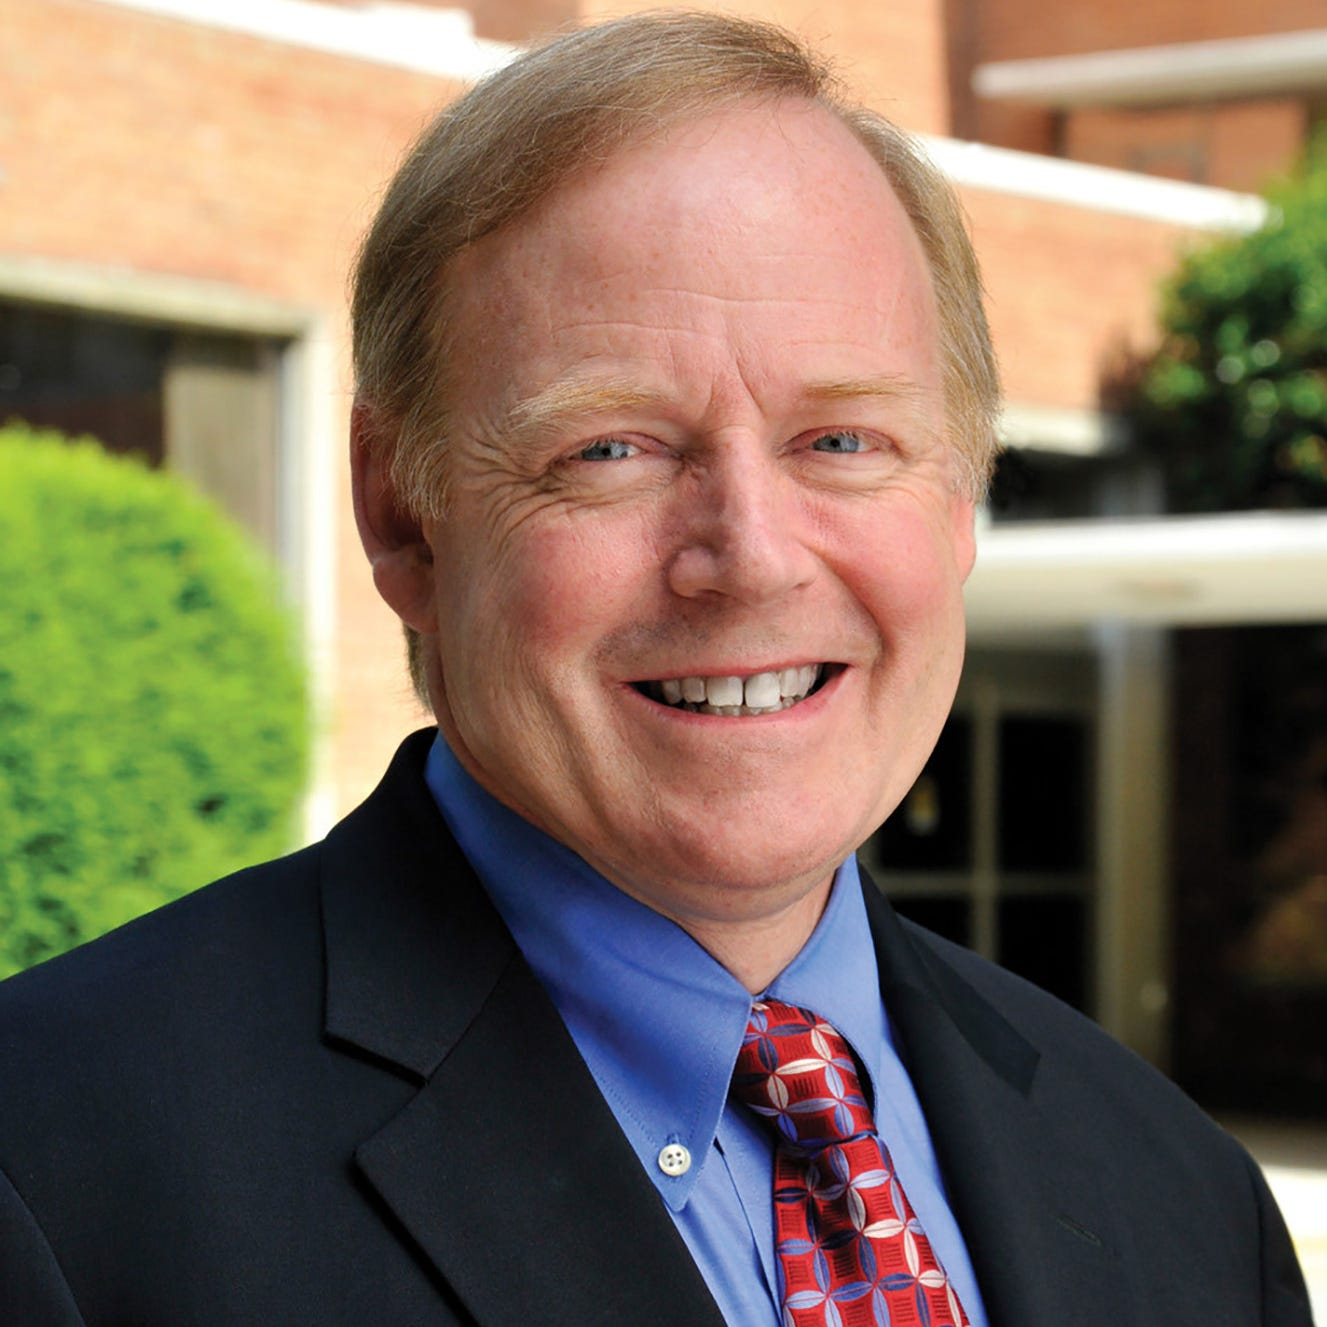 Ann Arbor native leaving Johns Hopkins to be CEO at Henry Ford Hospital